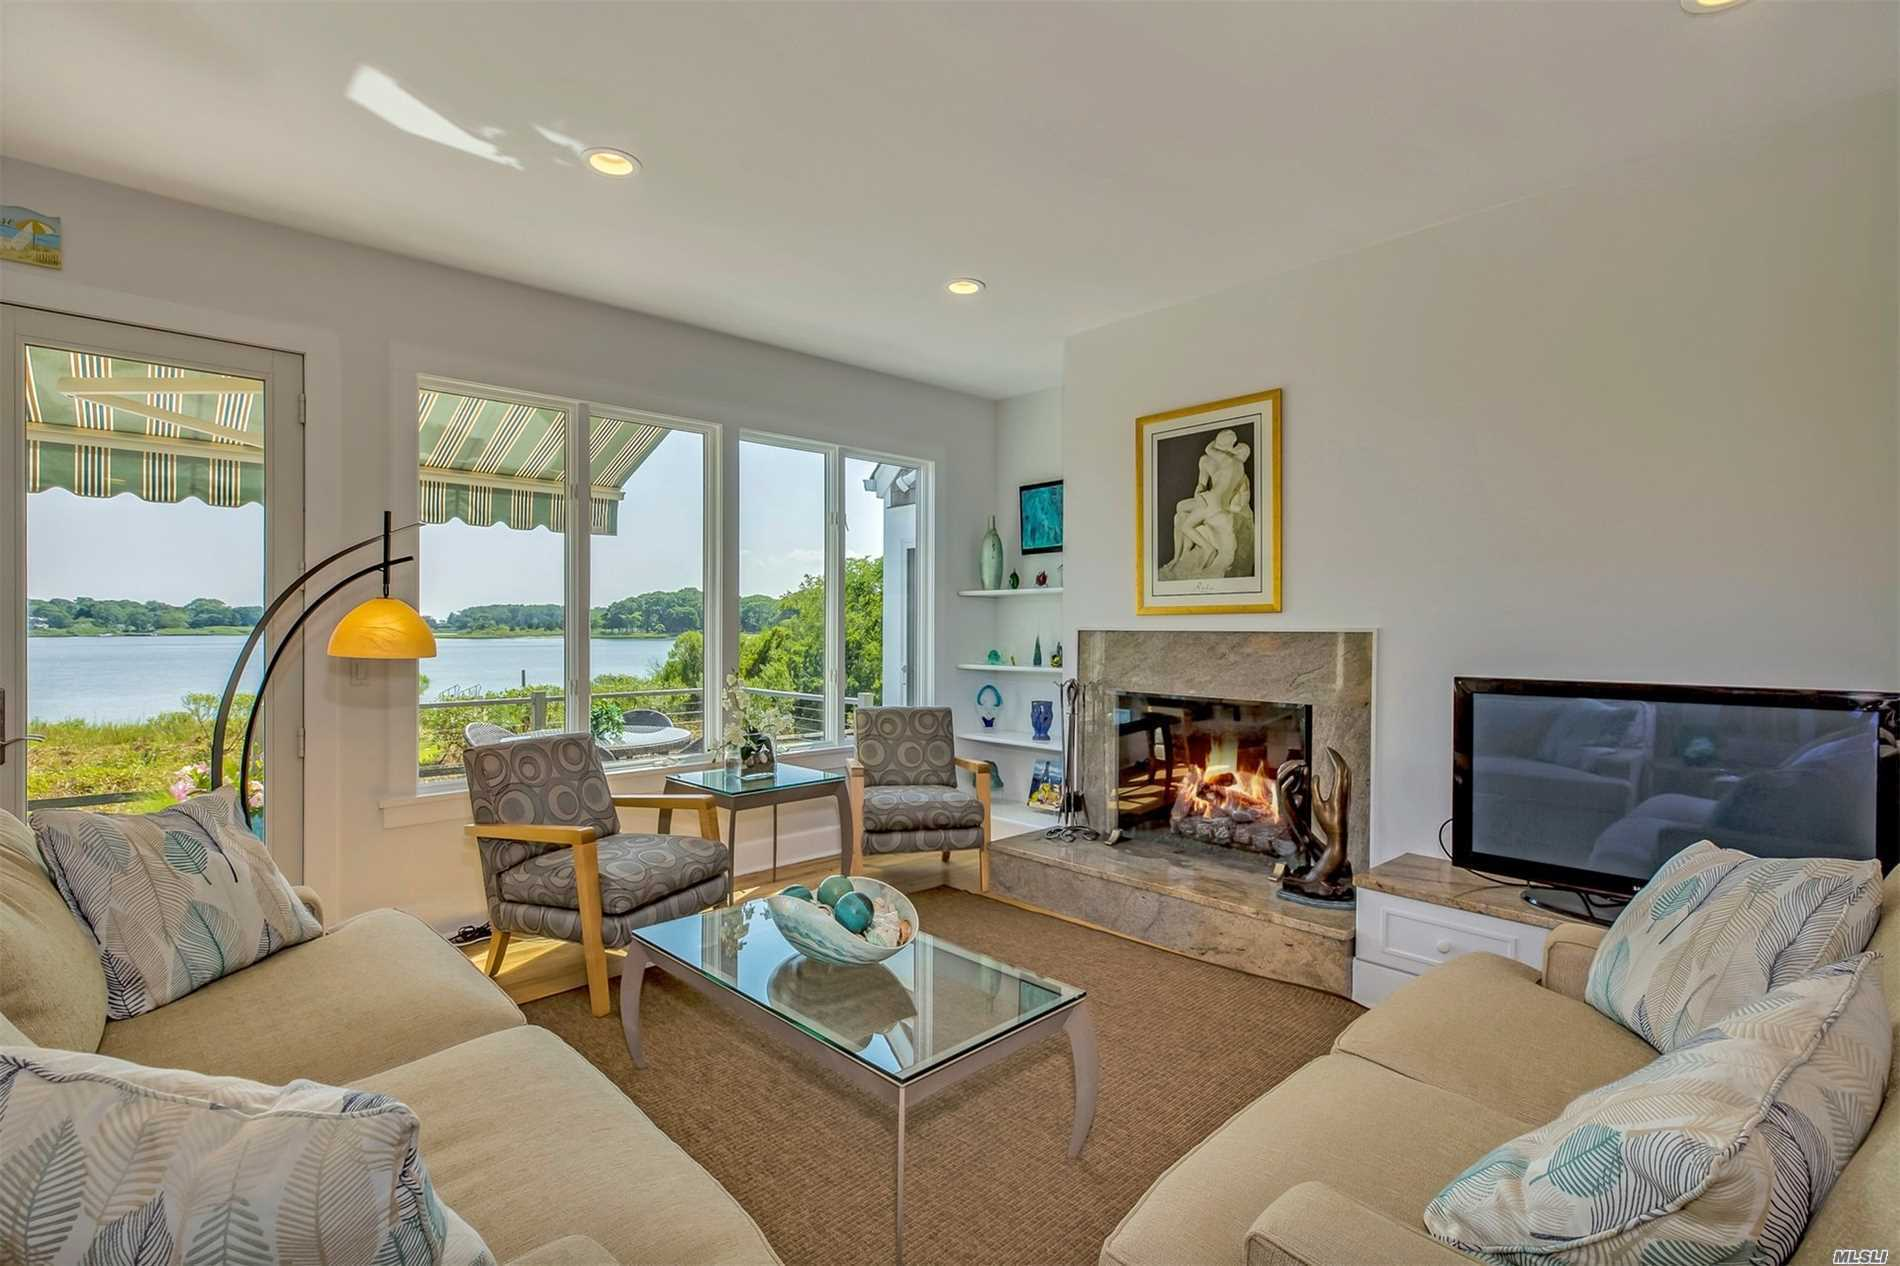 Most Marvelous Light & Bright Nantucket Style Waterfront Home With Private Dock! Beautifully Sited-Every Room Has Waterviews! Over 3500 Sq Ft, High Ceilings, Open Plan - Modern Kitchen & Baths. 1st Flr Master W/Fireplace & Direct Access To Deck And Waterfront. Two Ensuite Bedrooms - Four Bedrooms, 3.5 Baths In All. Great Rm W/Fireplace, Family Rm, Hobby Rm/Den. Al Fresco Dining, Lounging, Spa, Fire Pit, Outdoor Shower. Enjoy Boating, Kayaking & Swimming From Your Back Yard! Easy Walk To Town!